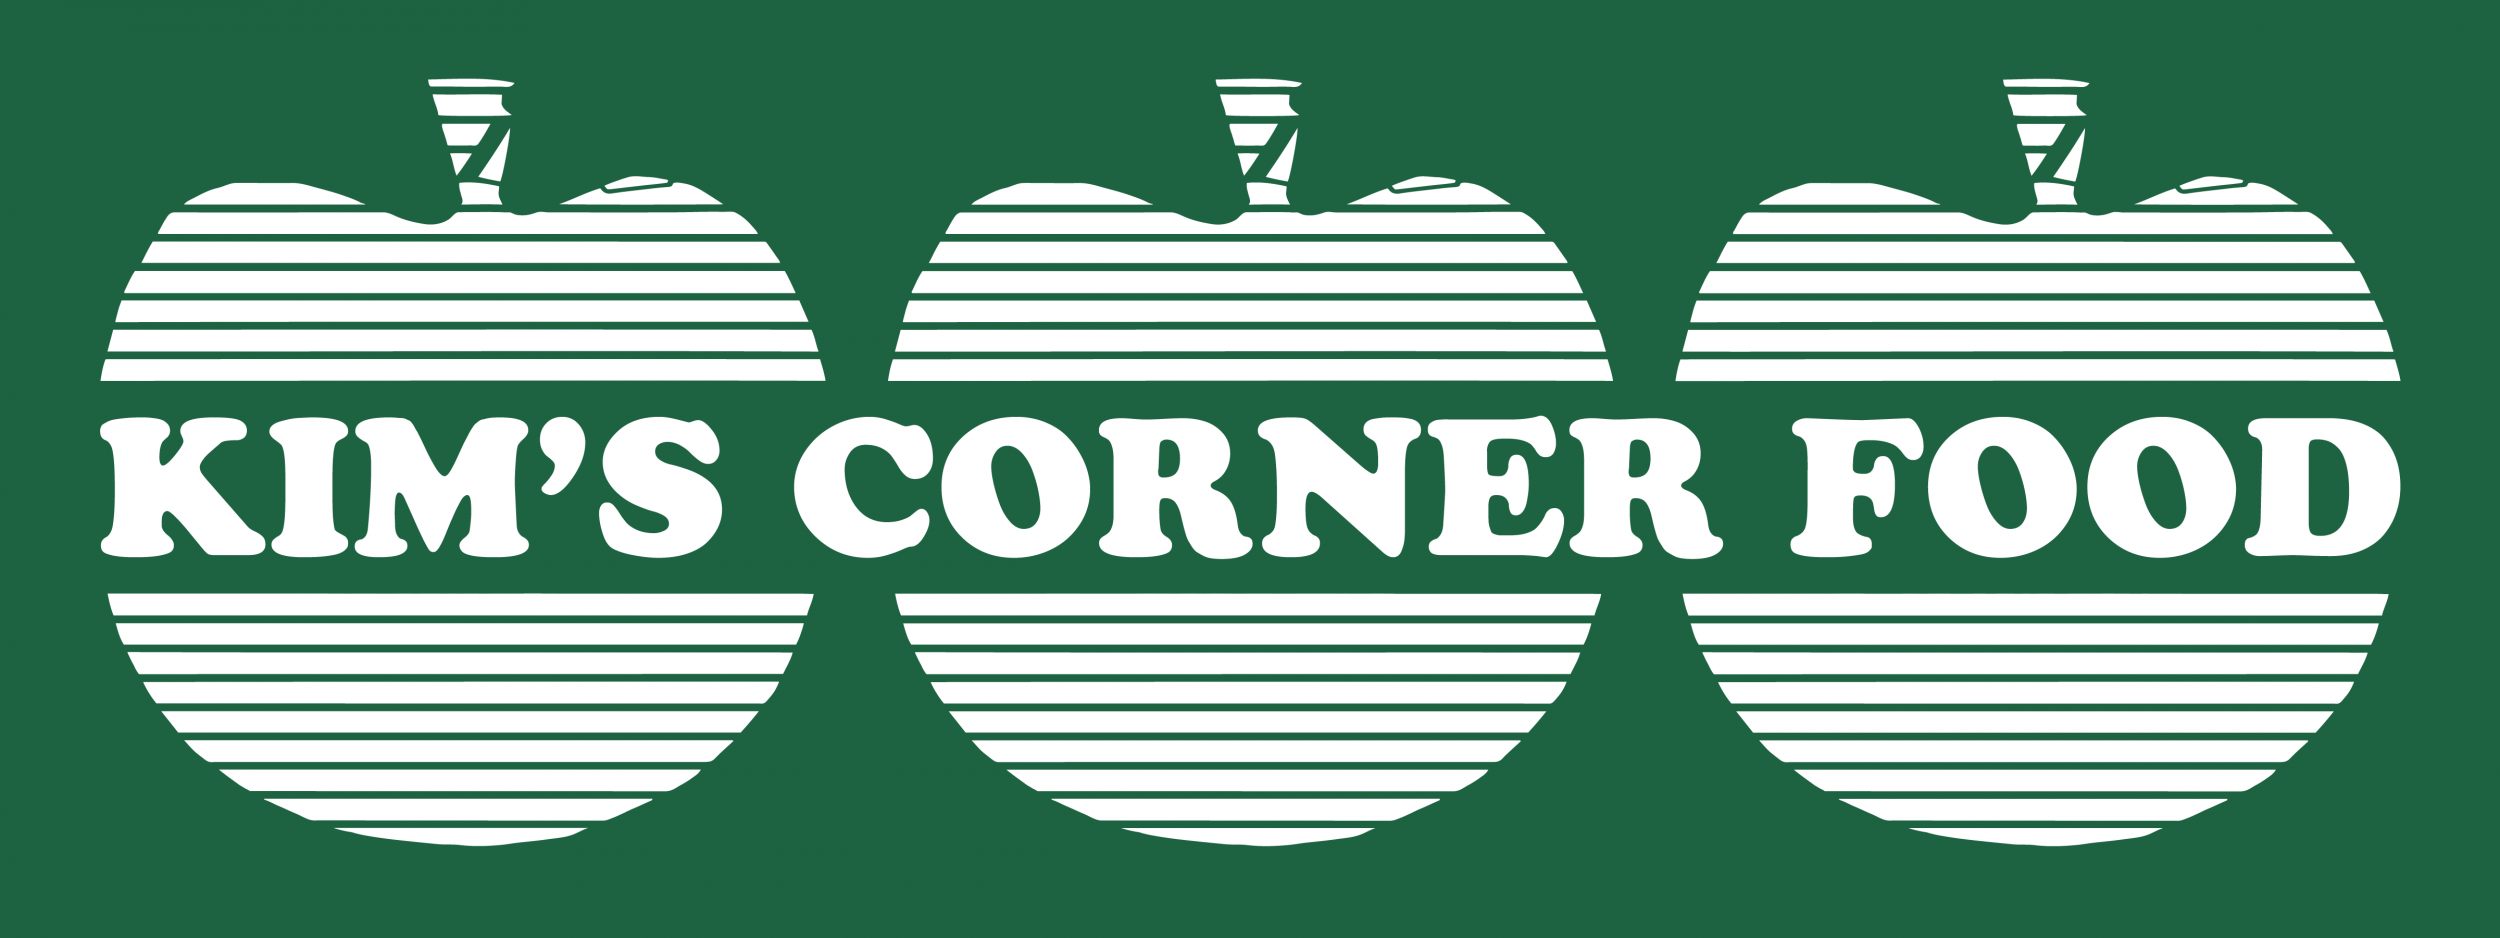 Dan Miller/Thomas Kong (with Steven Husby), Logo for Kim's Corner Food, 2016